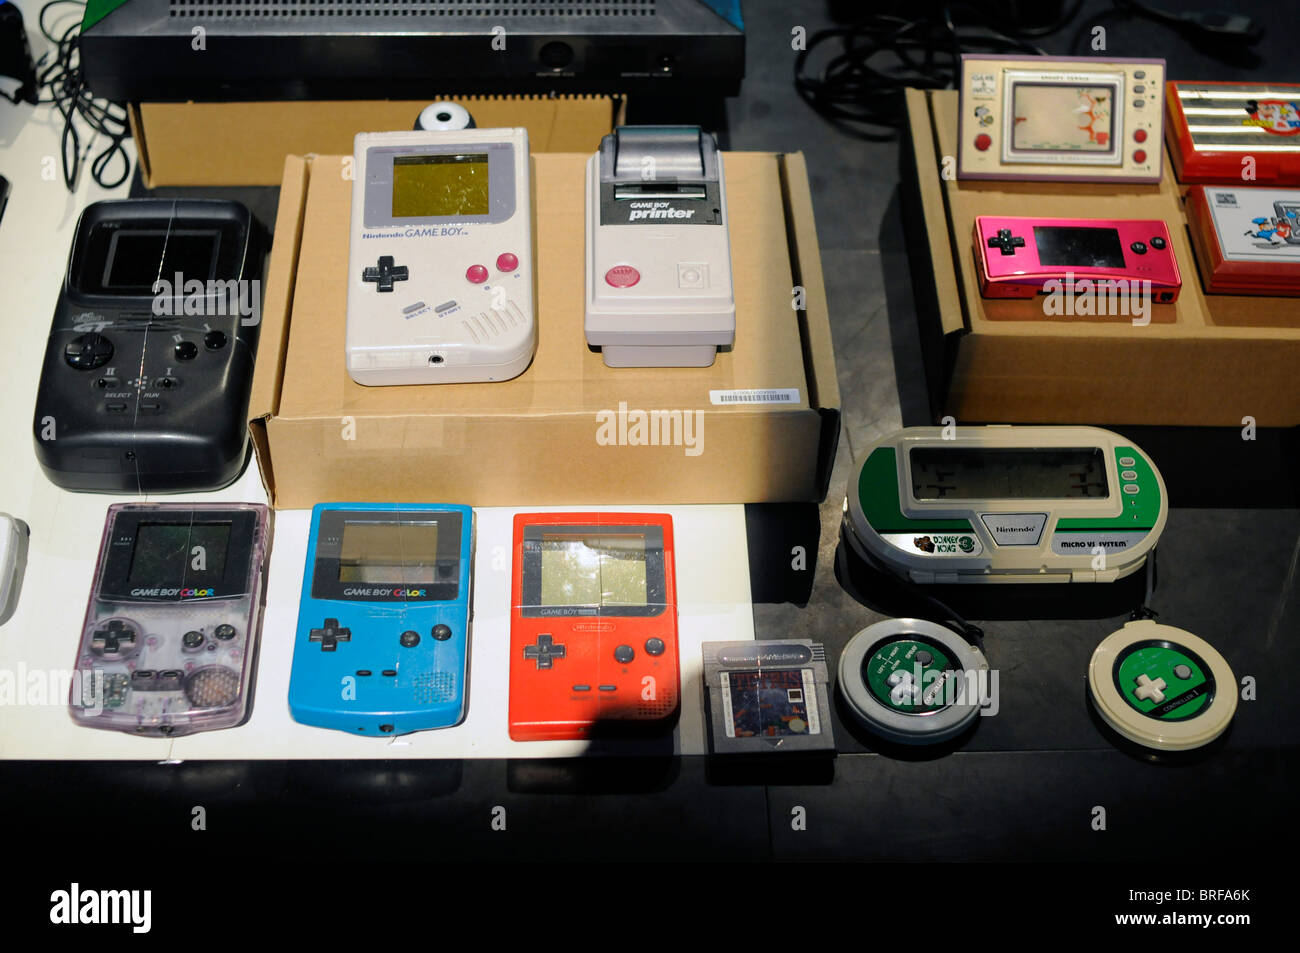 Portable Exhibition Games : Different portable video game consoles on display during an stock